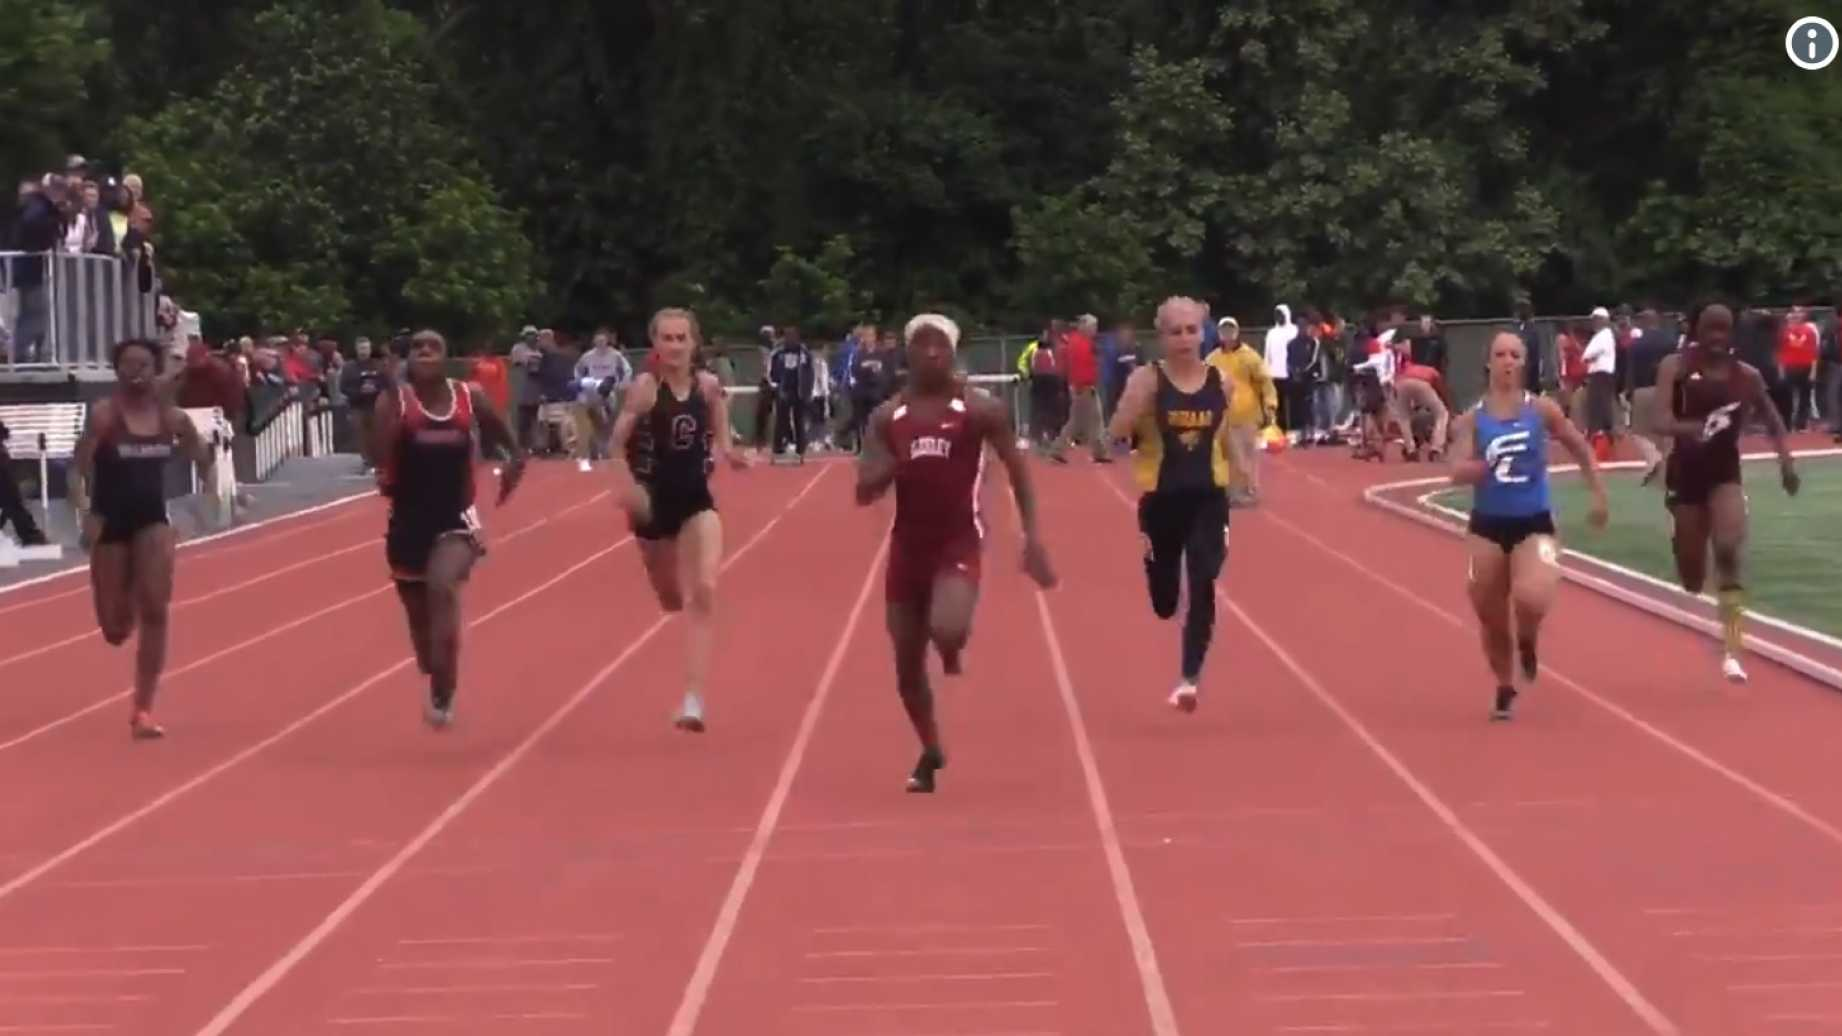 Transgenders Smoke Girls in State Track Meet